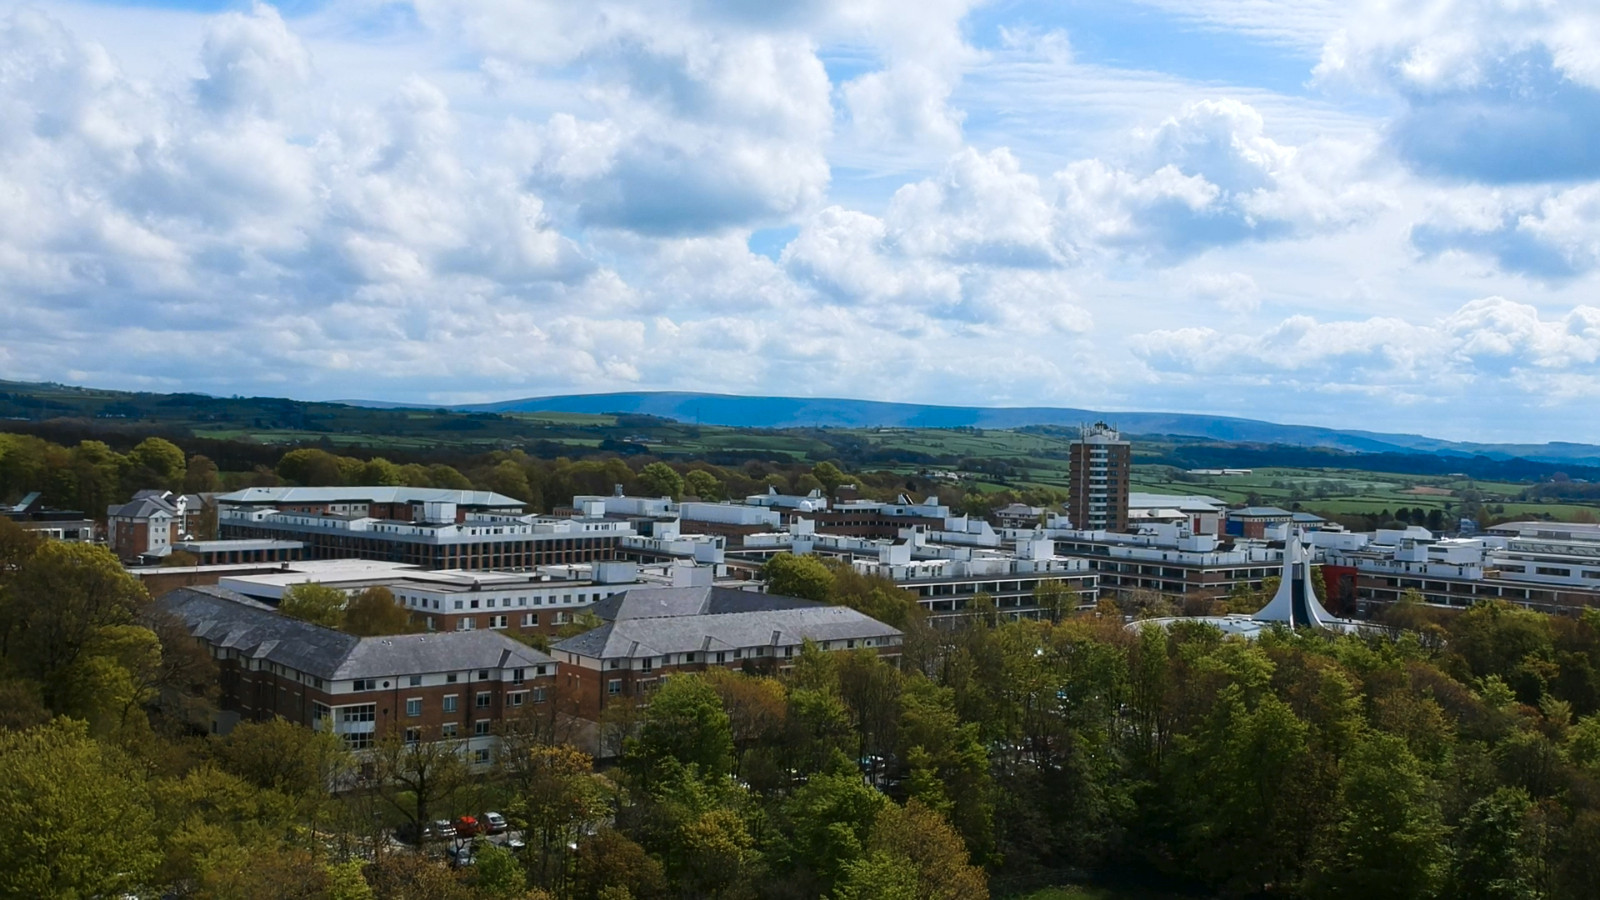 Still from documentary Student Media Roses Coverage of drone shot of Lancaster University campus